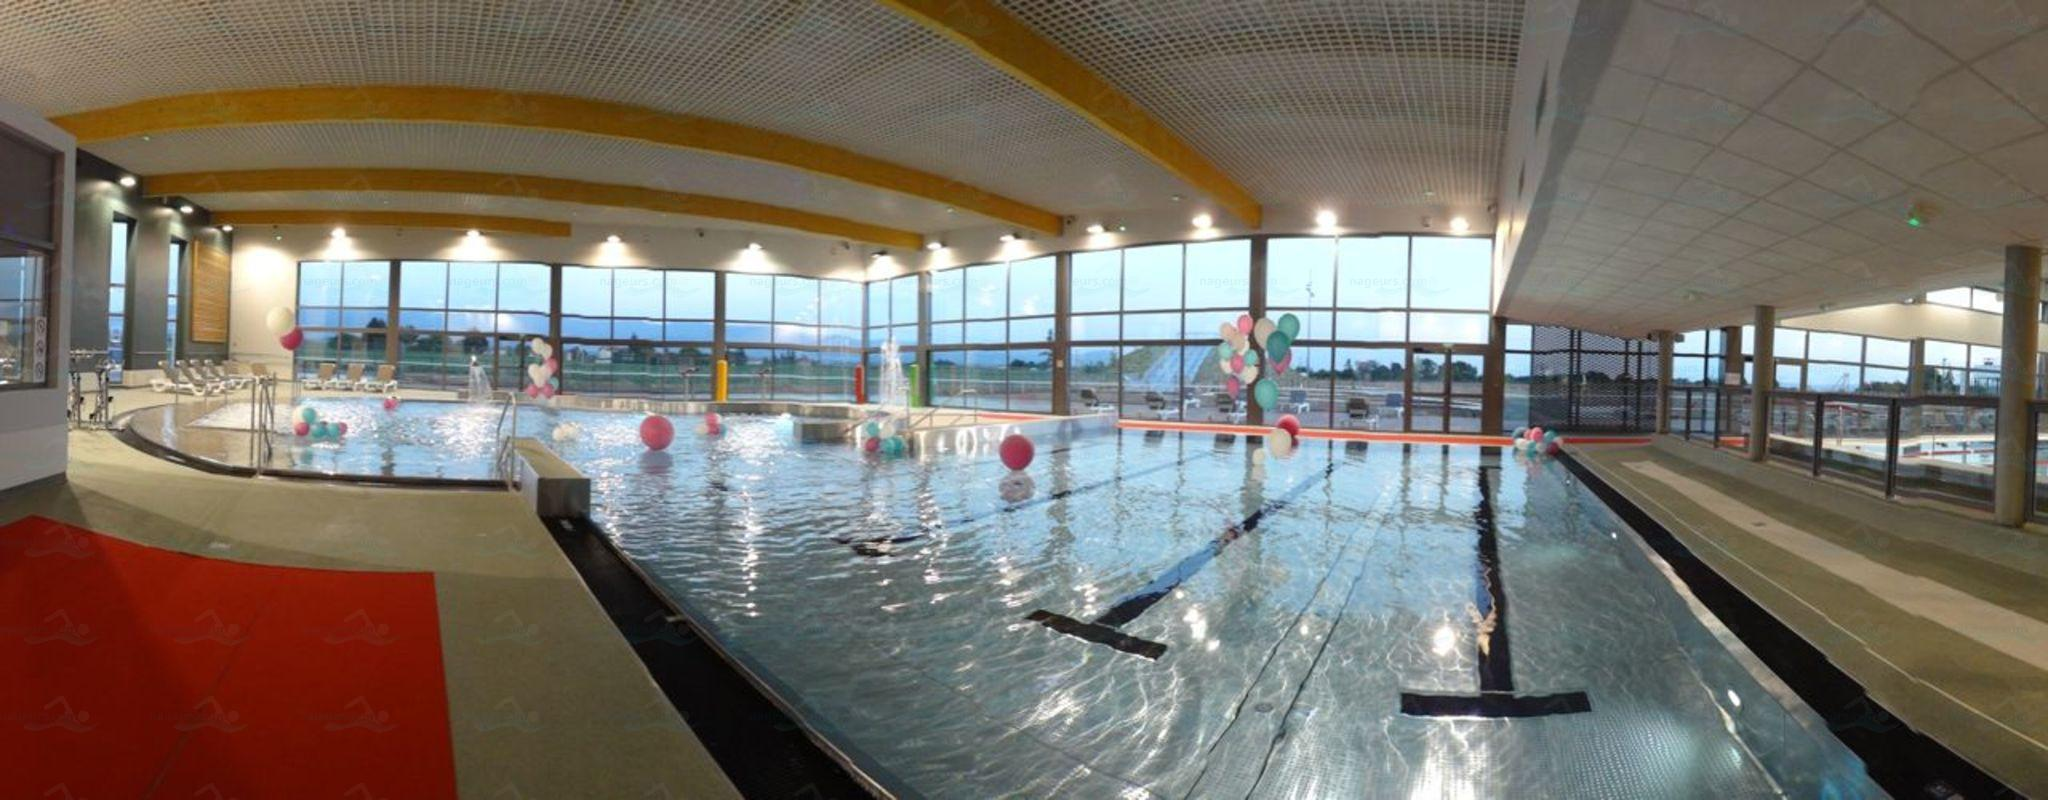 Photos piscine municipale de bourg de p age for Piscine diabolo a bourg de peage